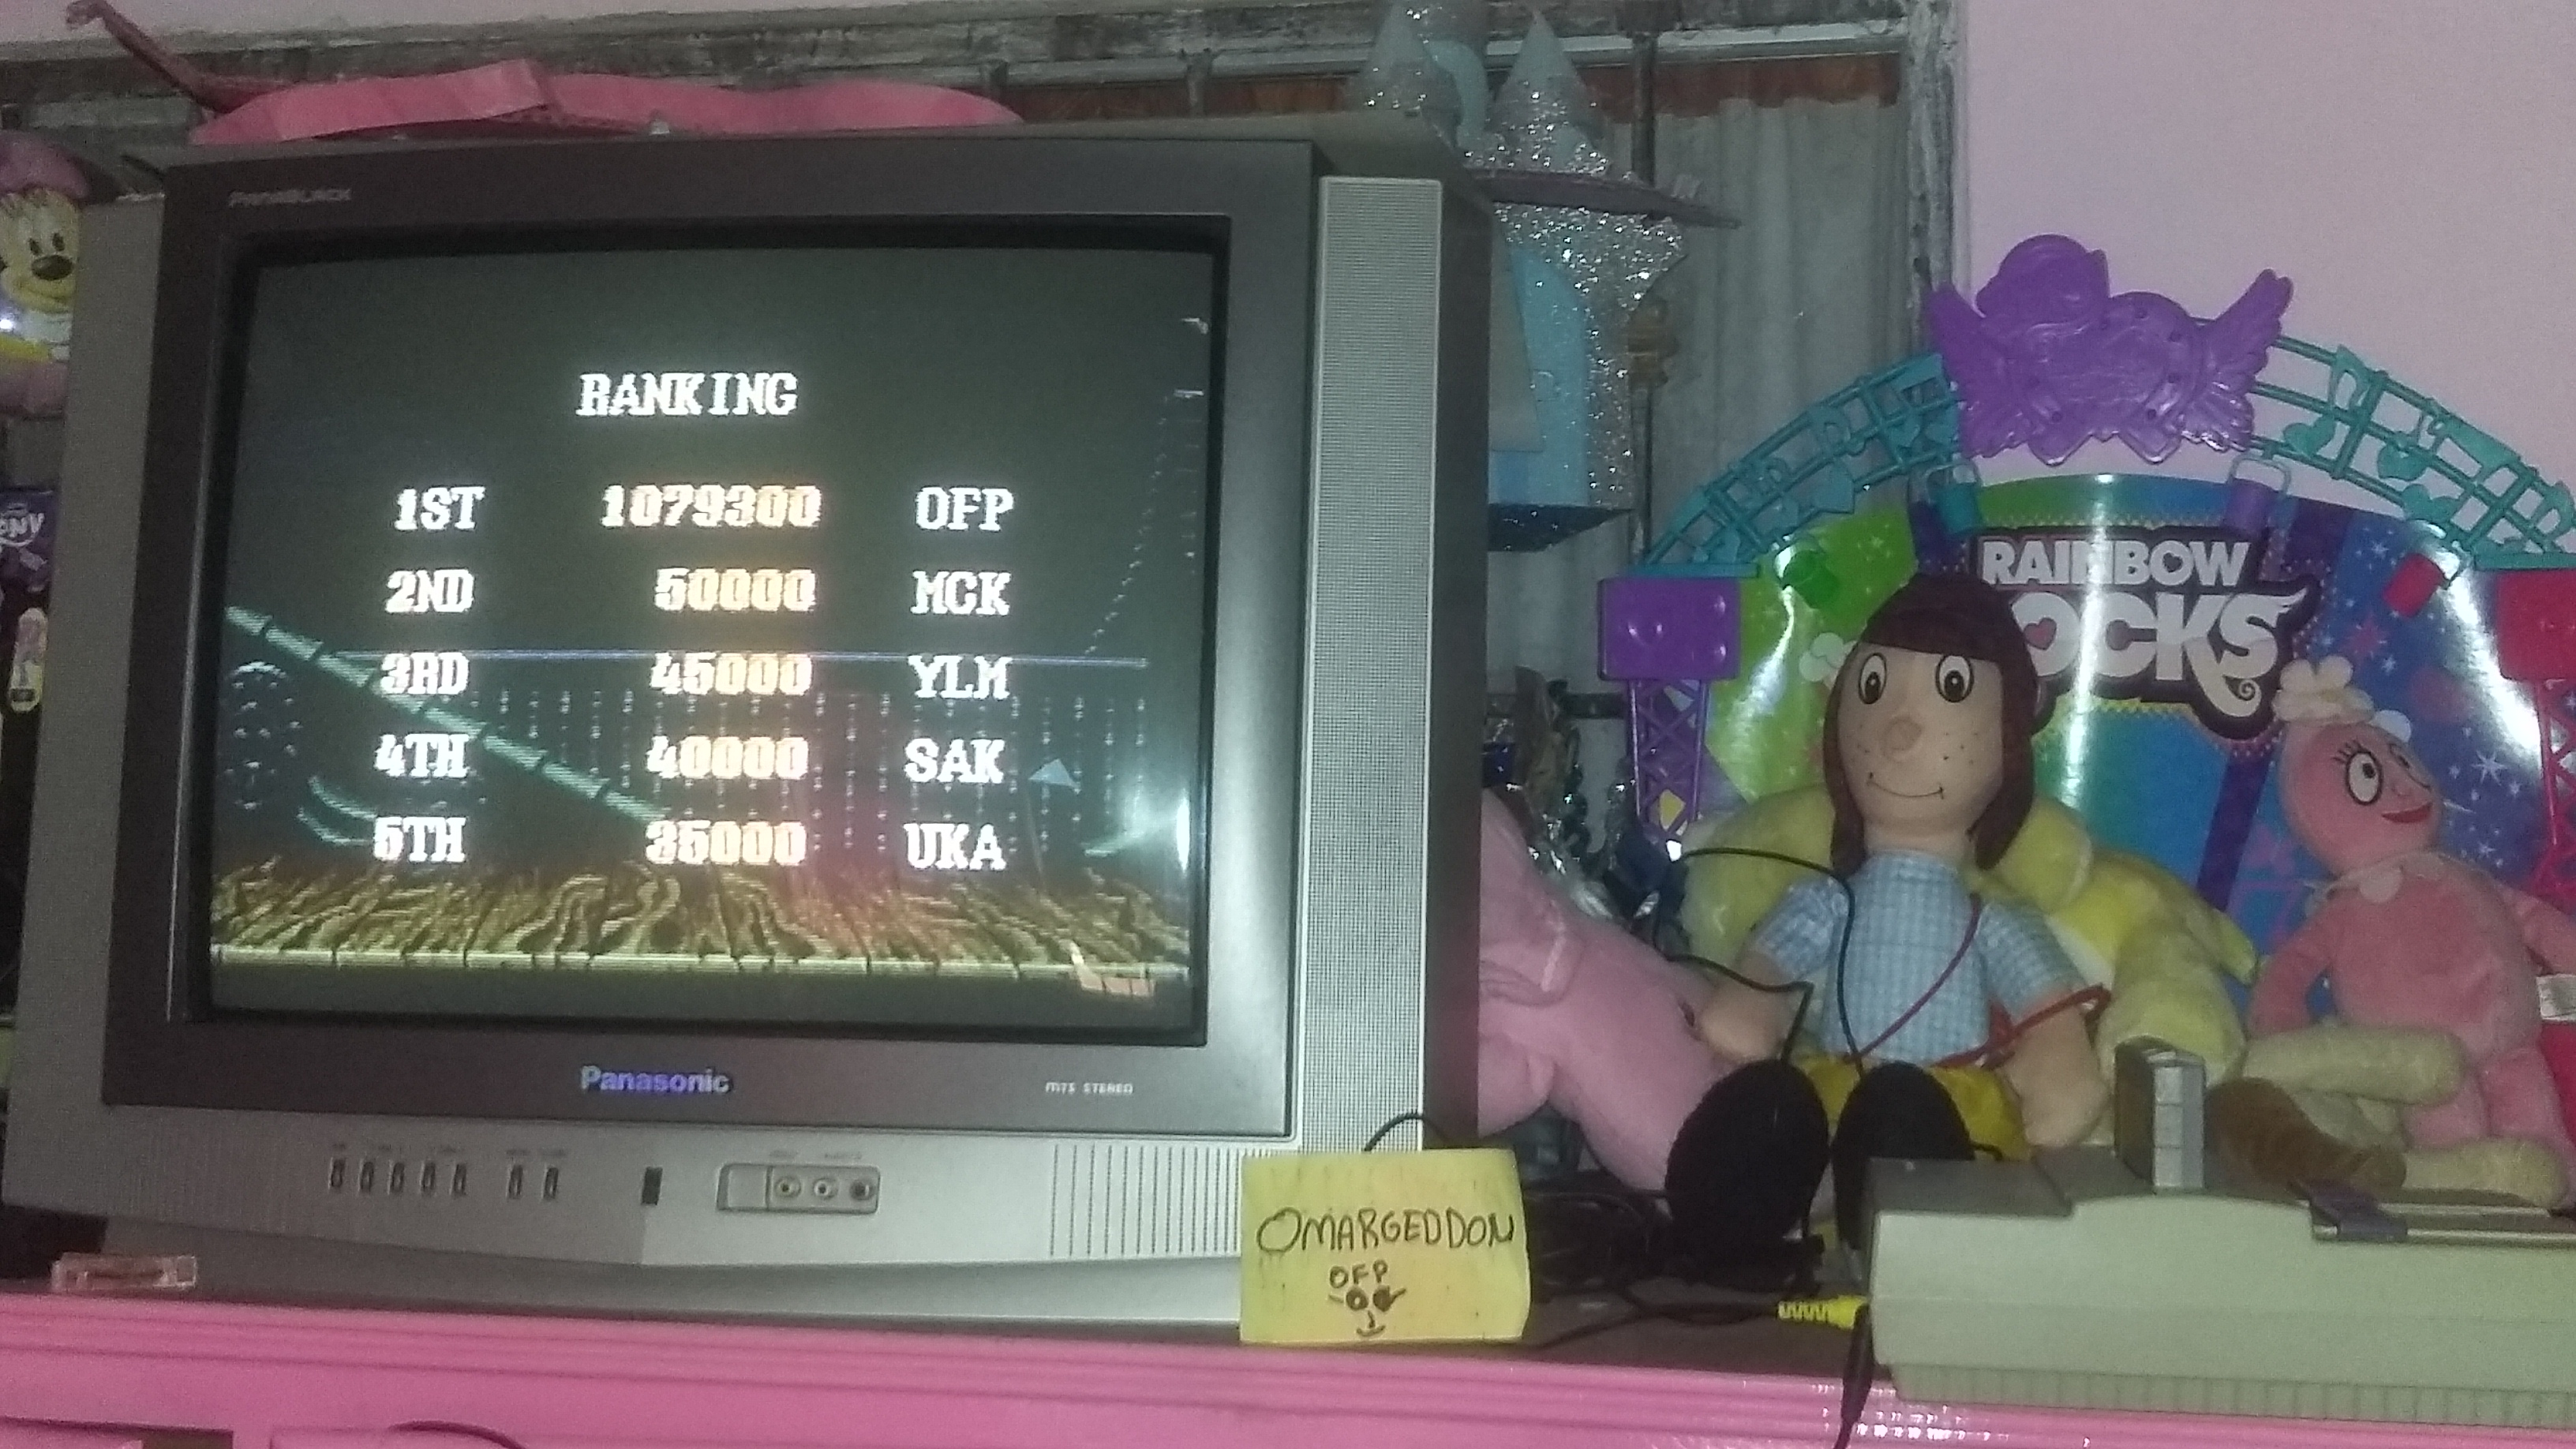 Street Fighter II Turbo: Hyper Fighting [Turbo / Difficulty 1] 1,079,300 points